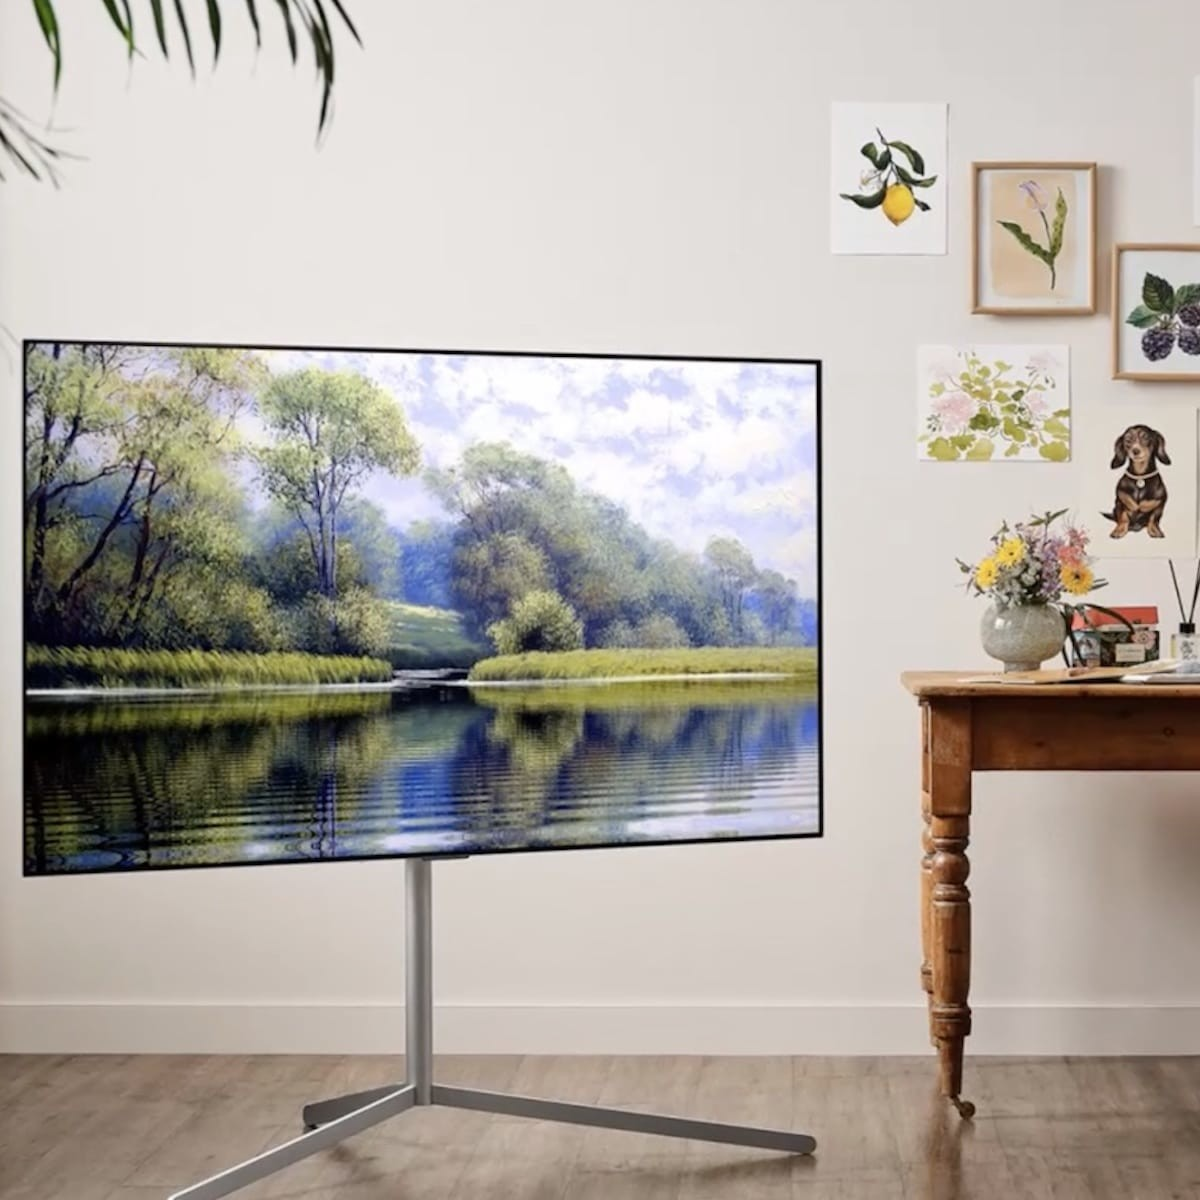 LG's 2021 TV lineup starts at $1,299 and features Dolby Atmos, Dolby Vision, and more thumbnail